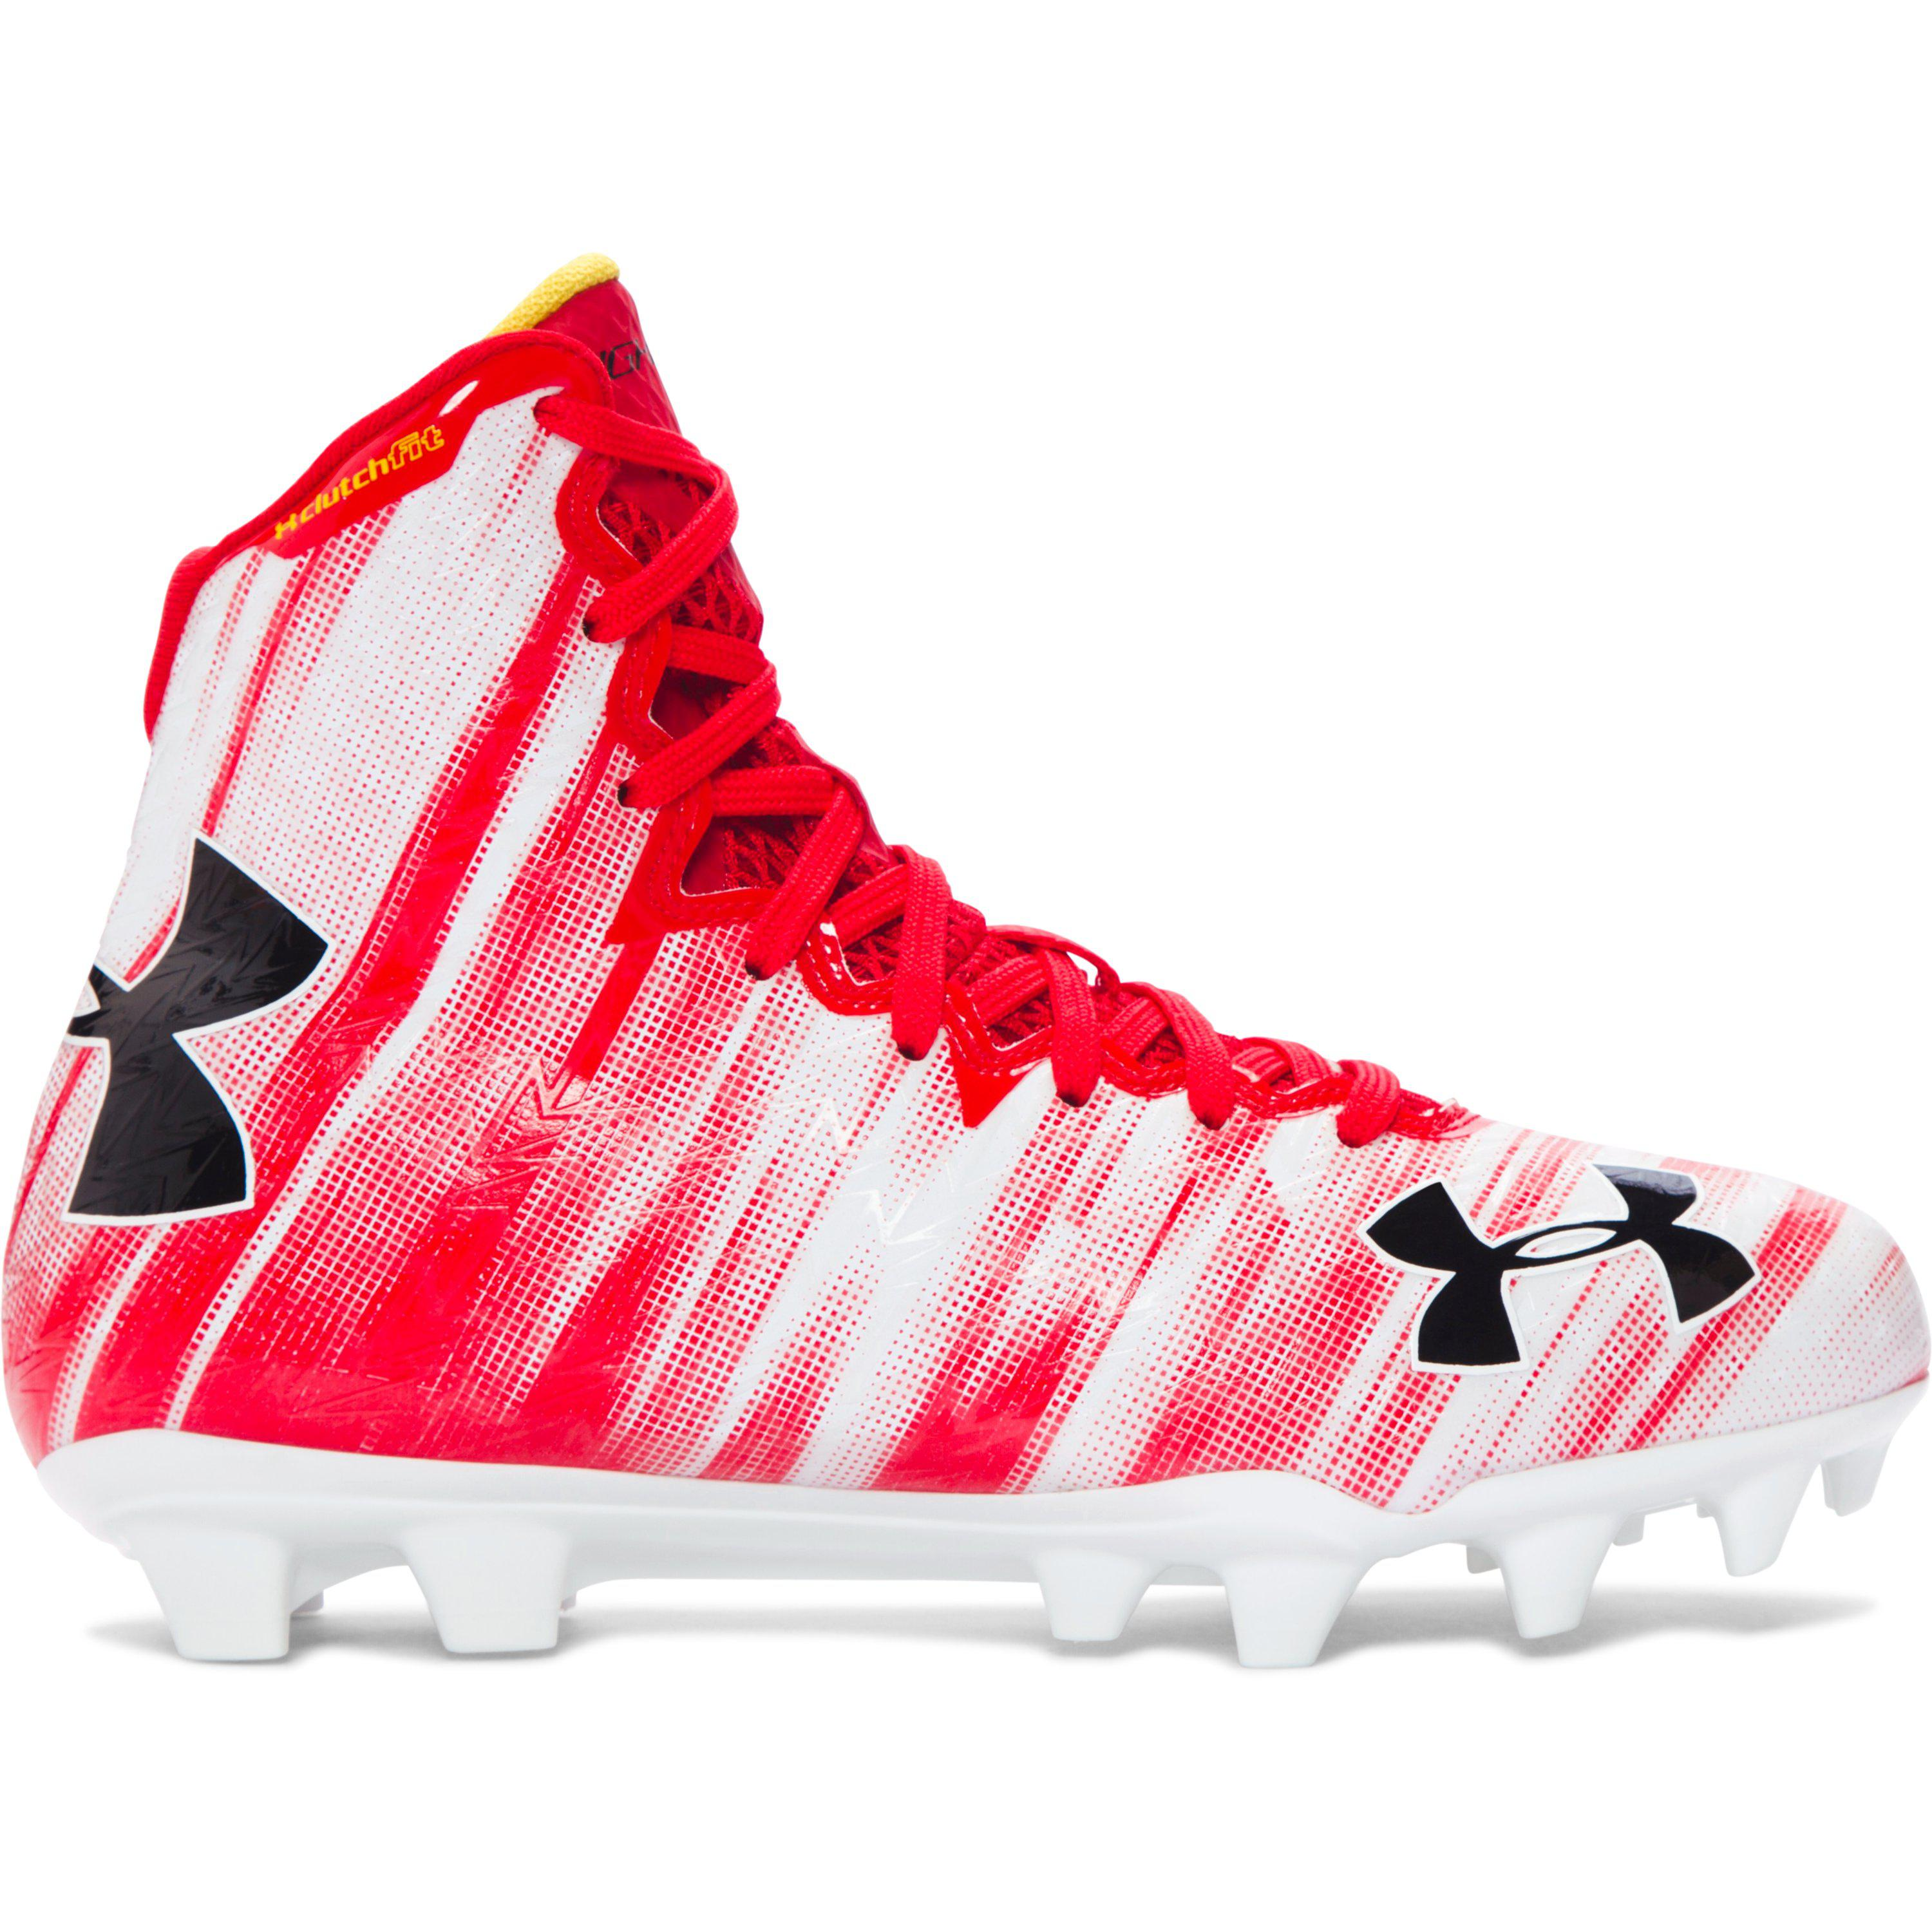 2b20623f057f Under Armour Women's Ua Highlight Mc Lacrosse Cleats in Red - Lyst